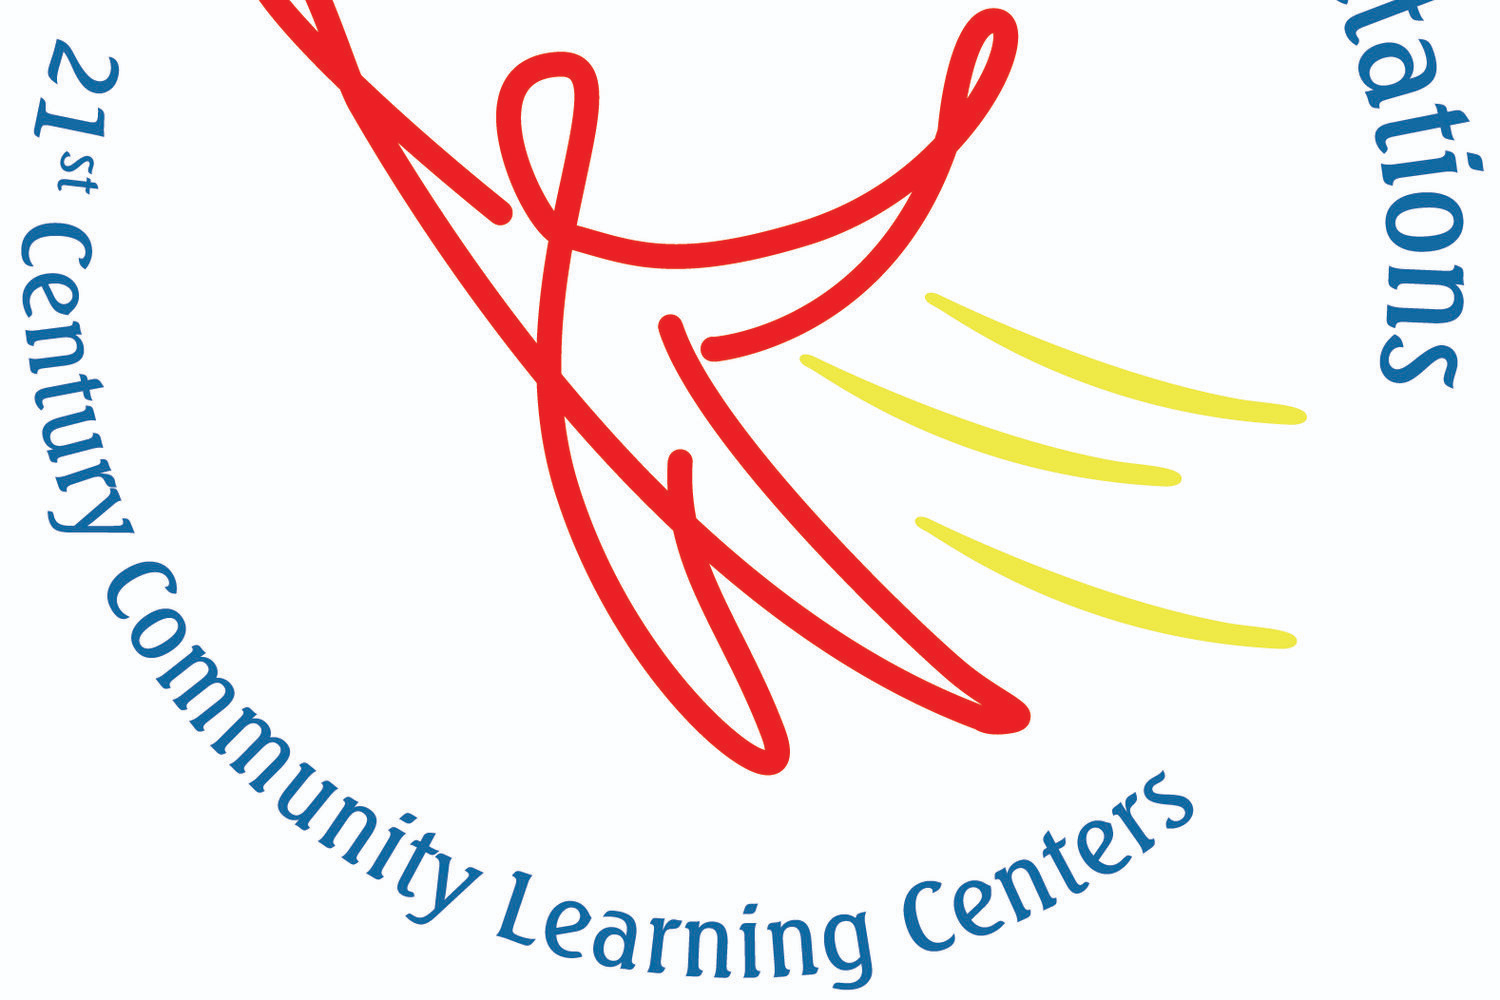 21st Century Learning Centers